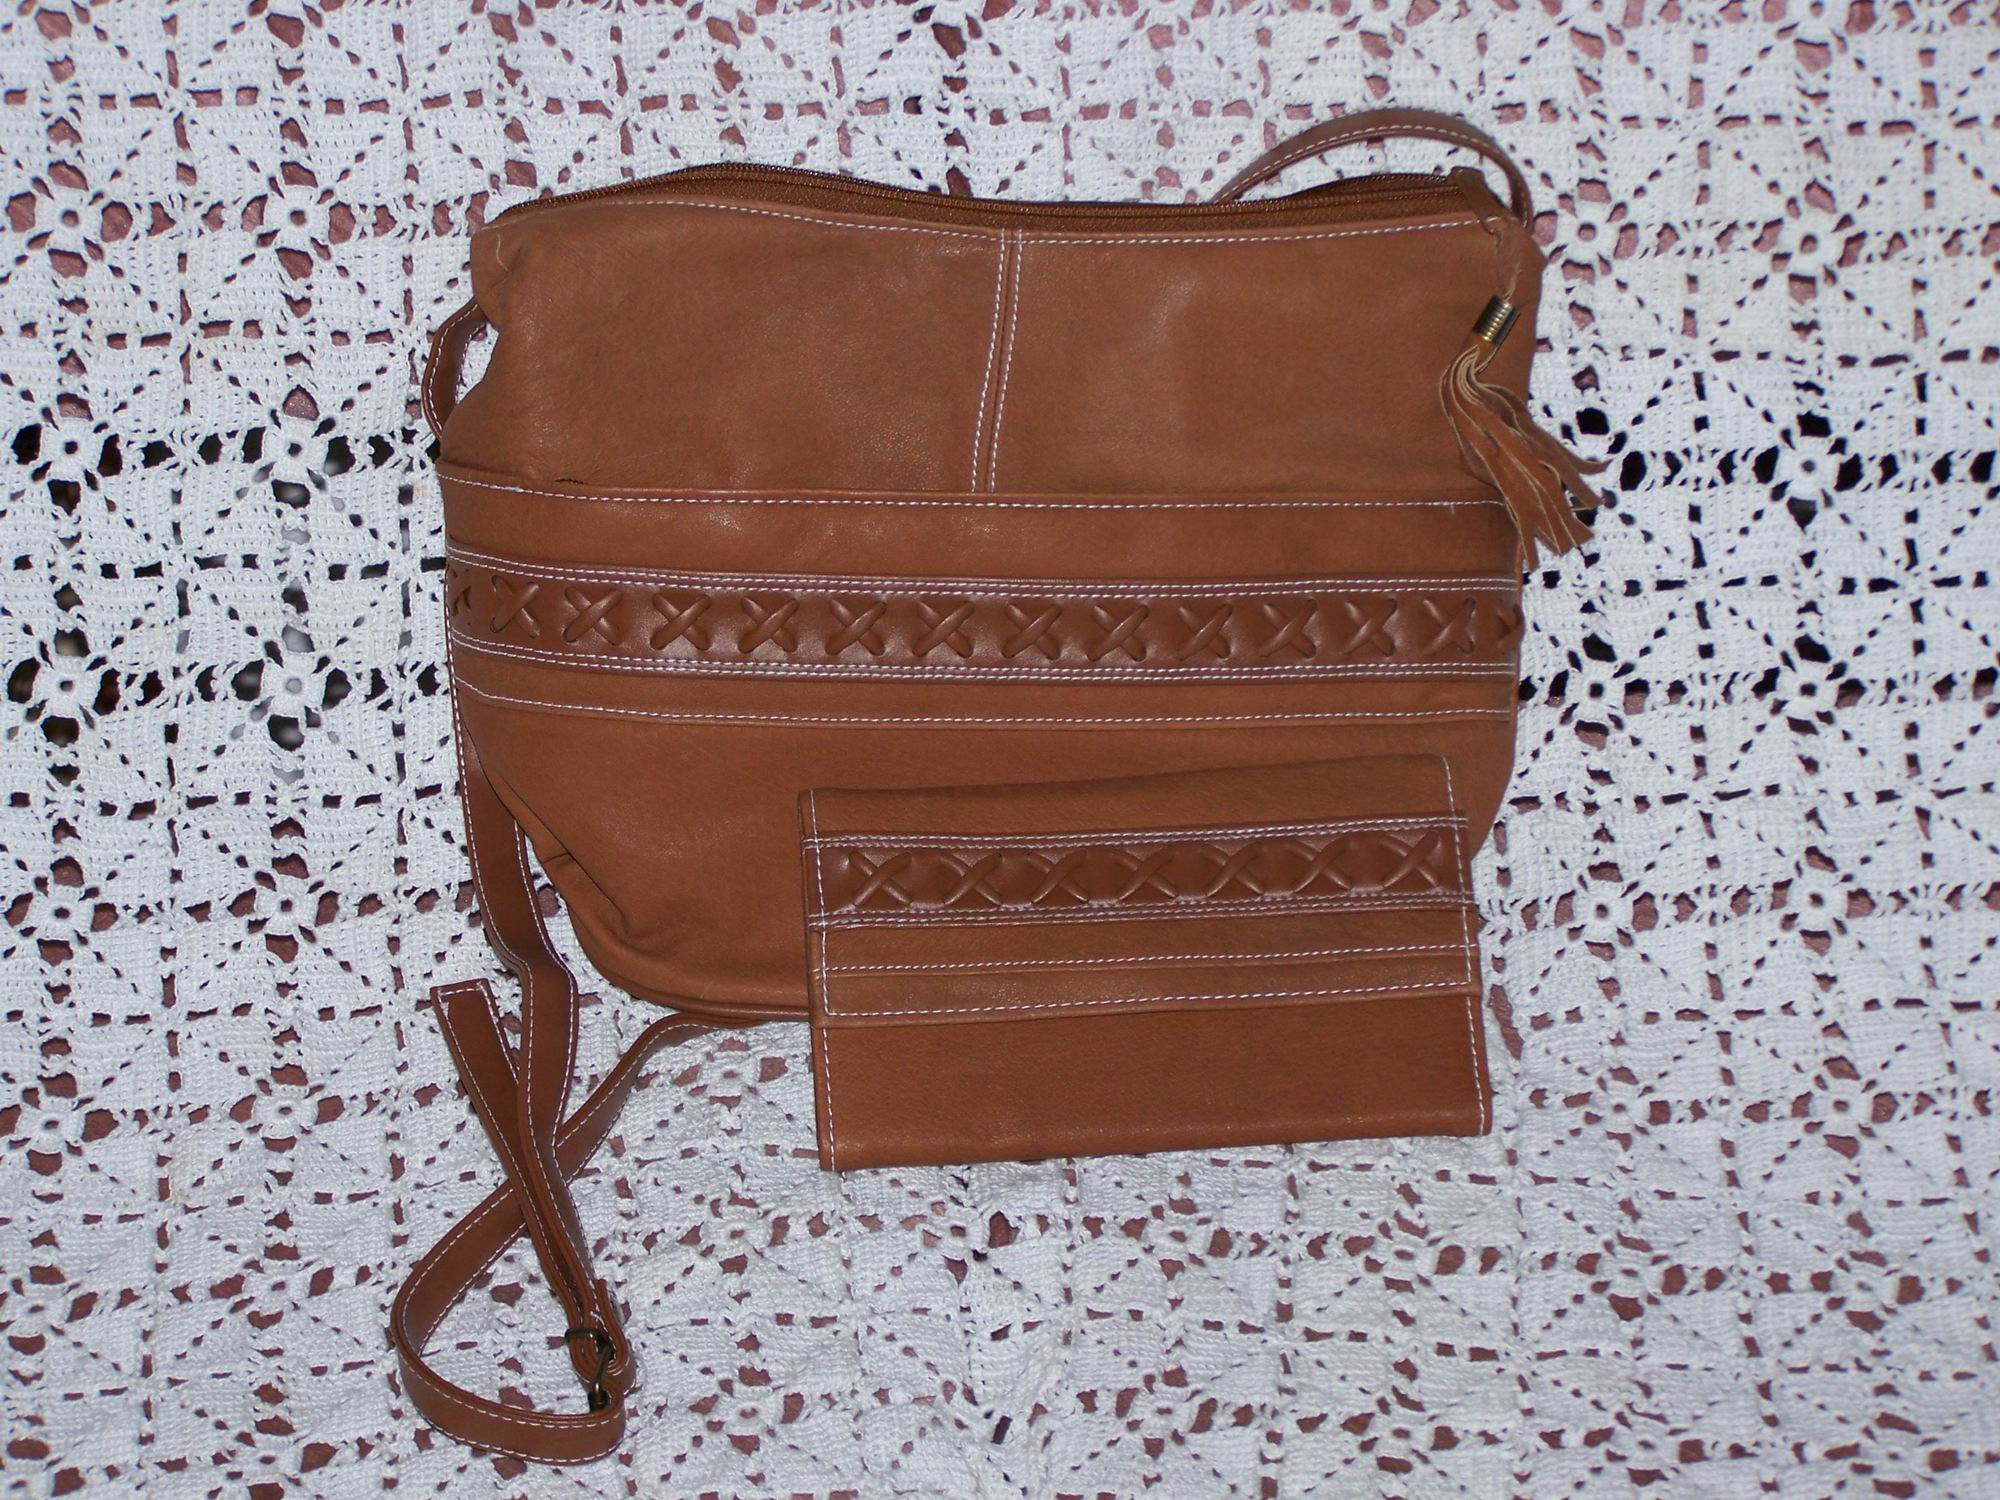 Brown Western Style Leather Handbag With Matching Wallet